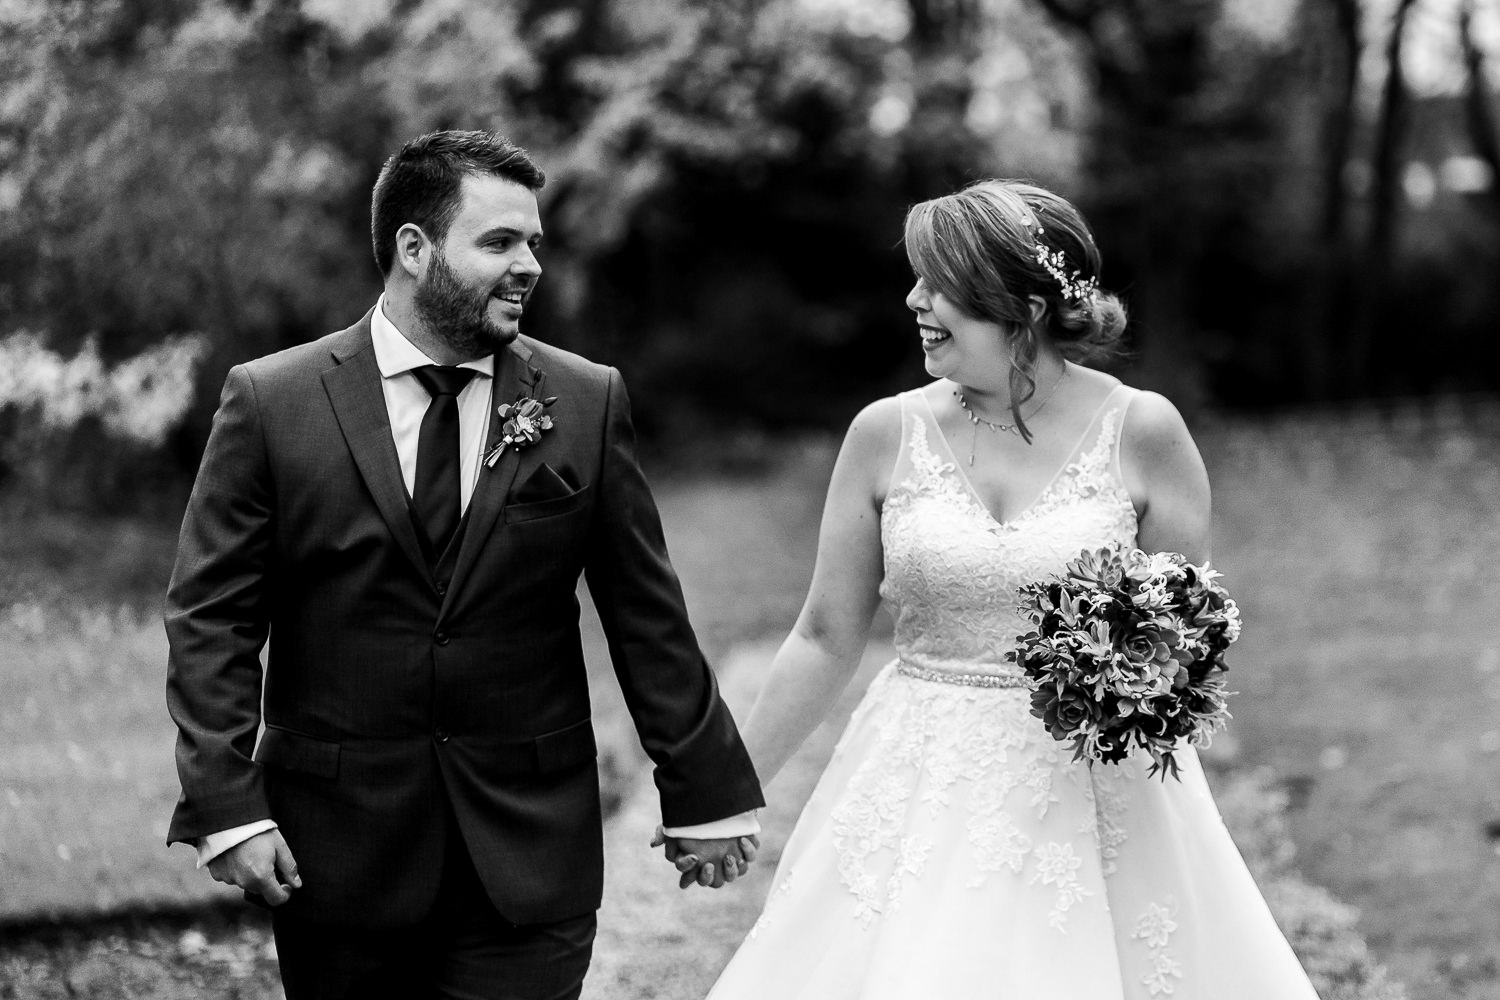 Bride and groom walking together at Ashfield House